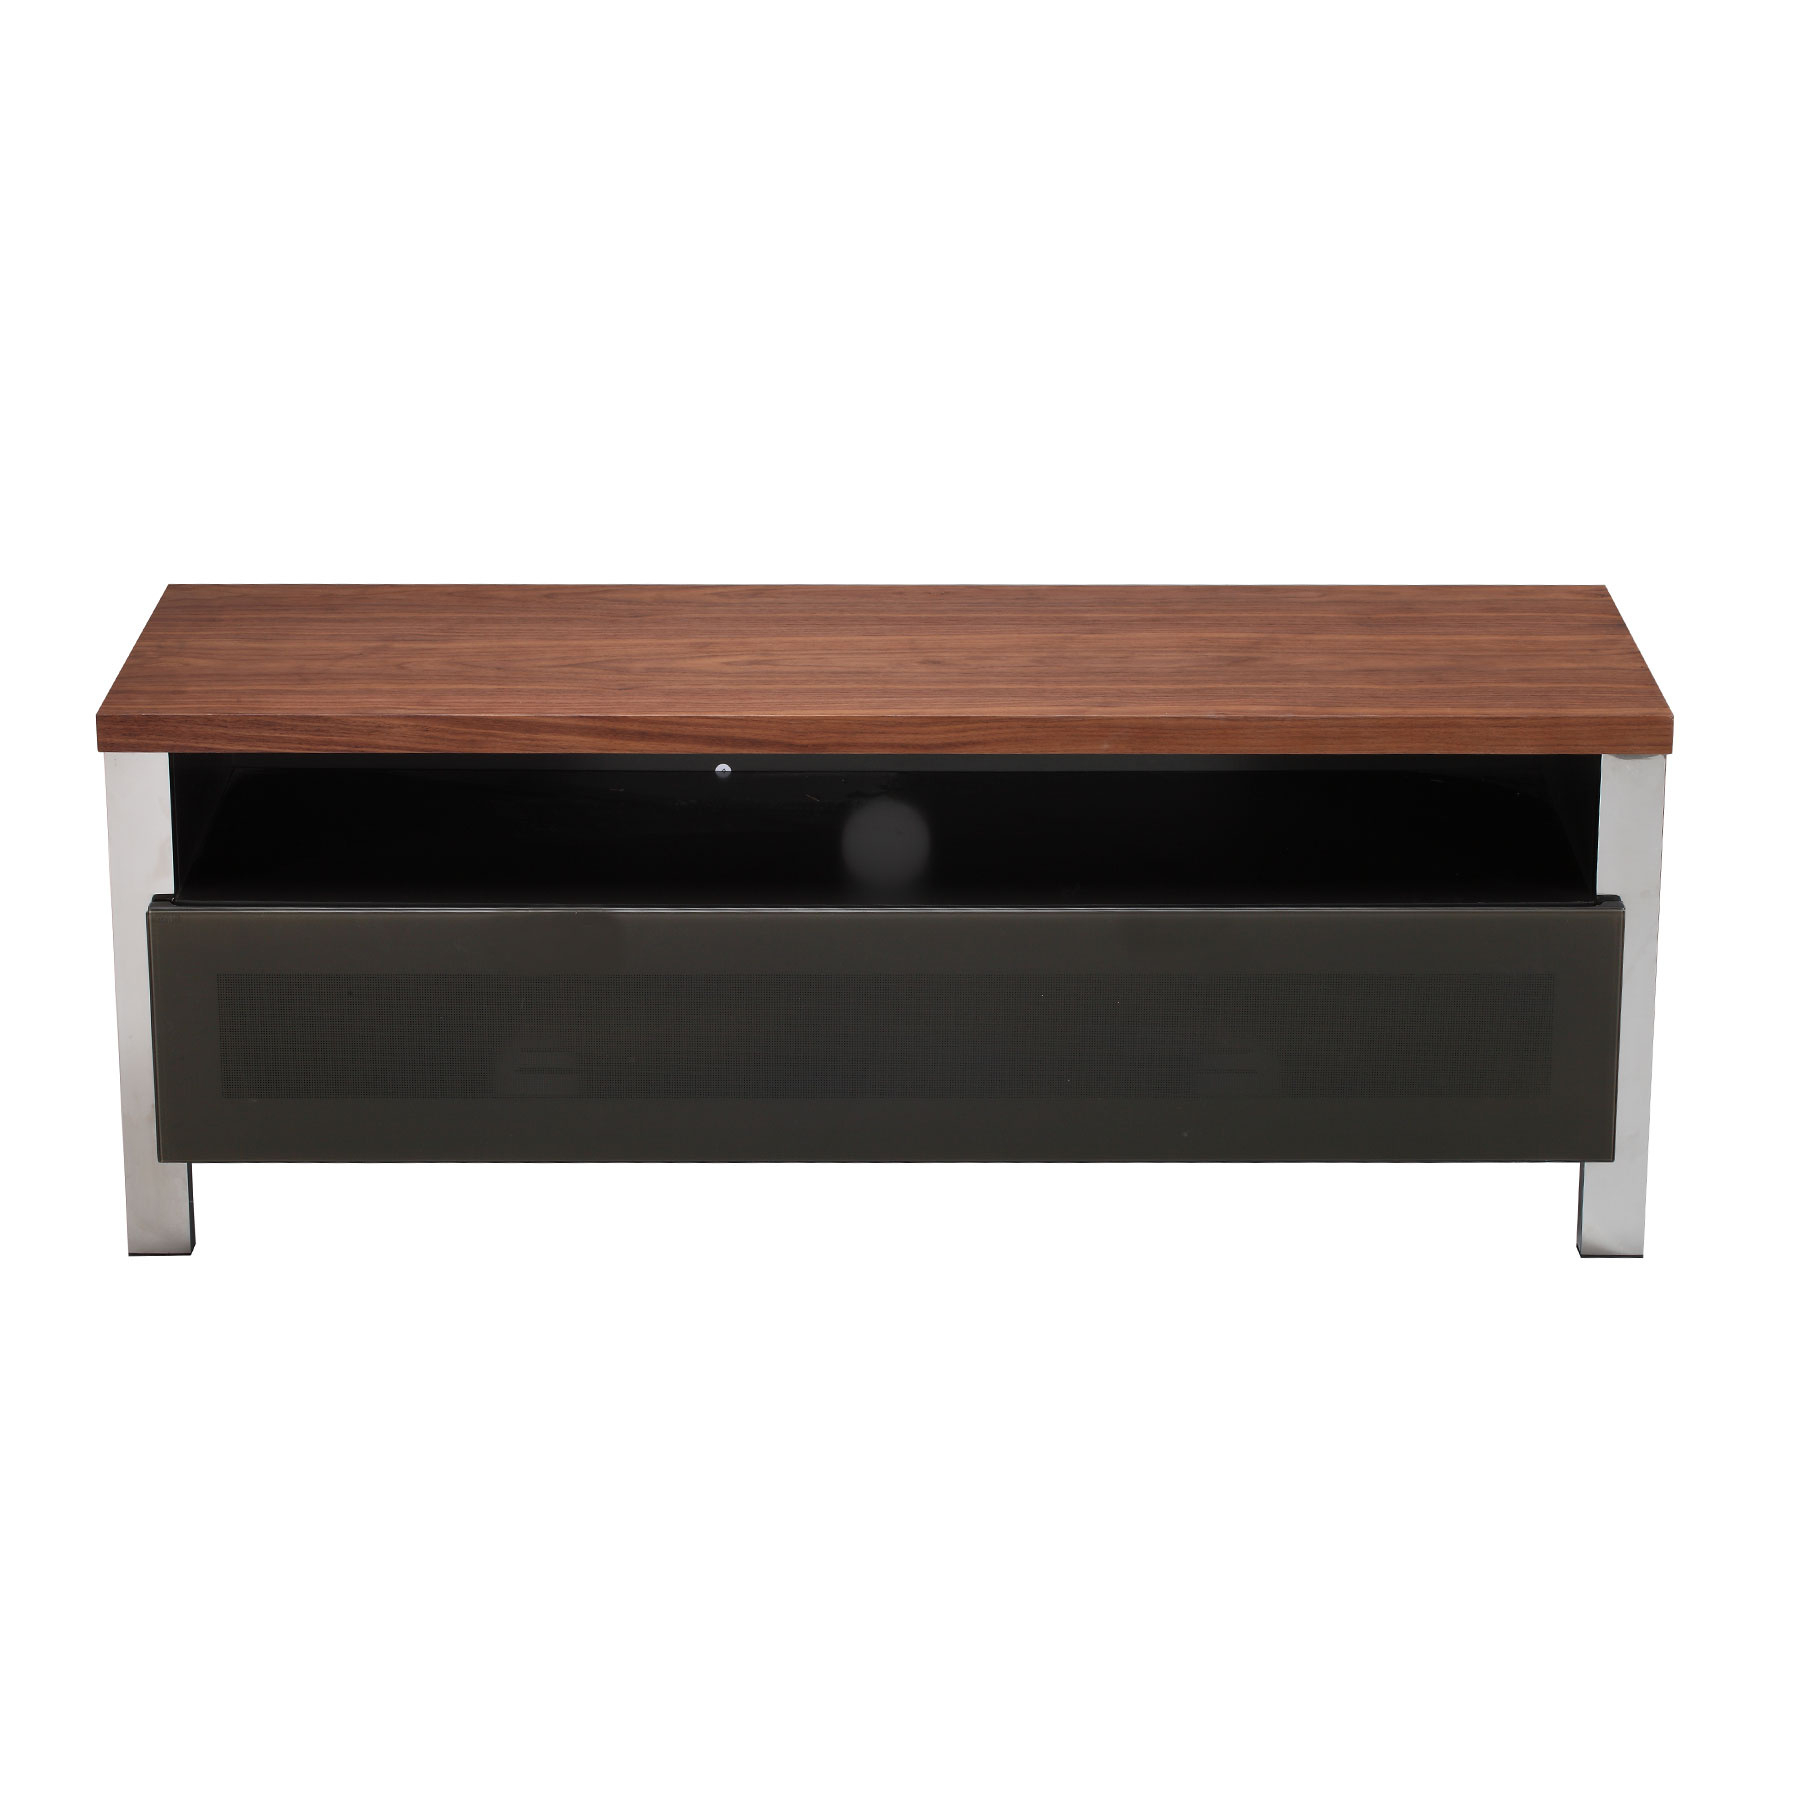 """Avenir Tv Stands For Tvs Up To 60"""" For Best And Newest Alphason Regent 120cm Walnut Tv Stand For Up To 60"""" Tvs (View 8 of 20)"""